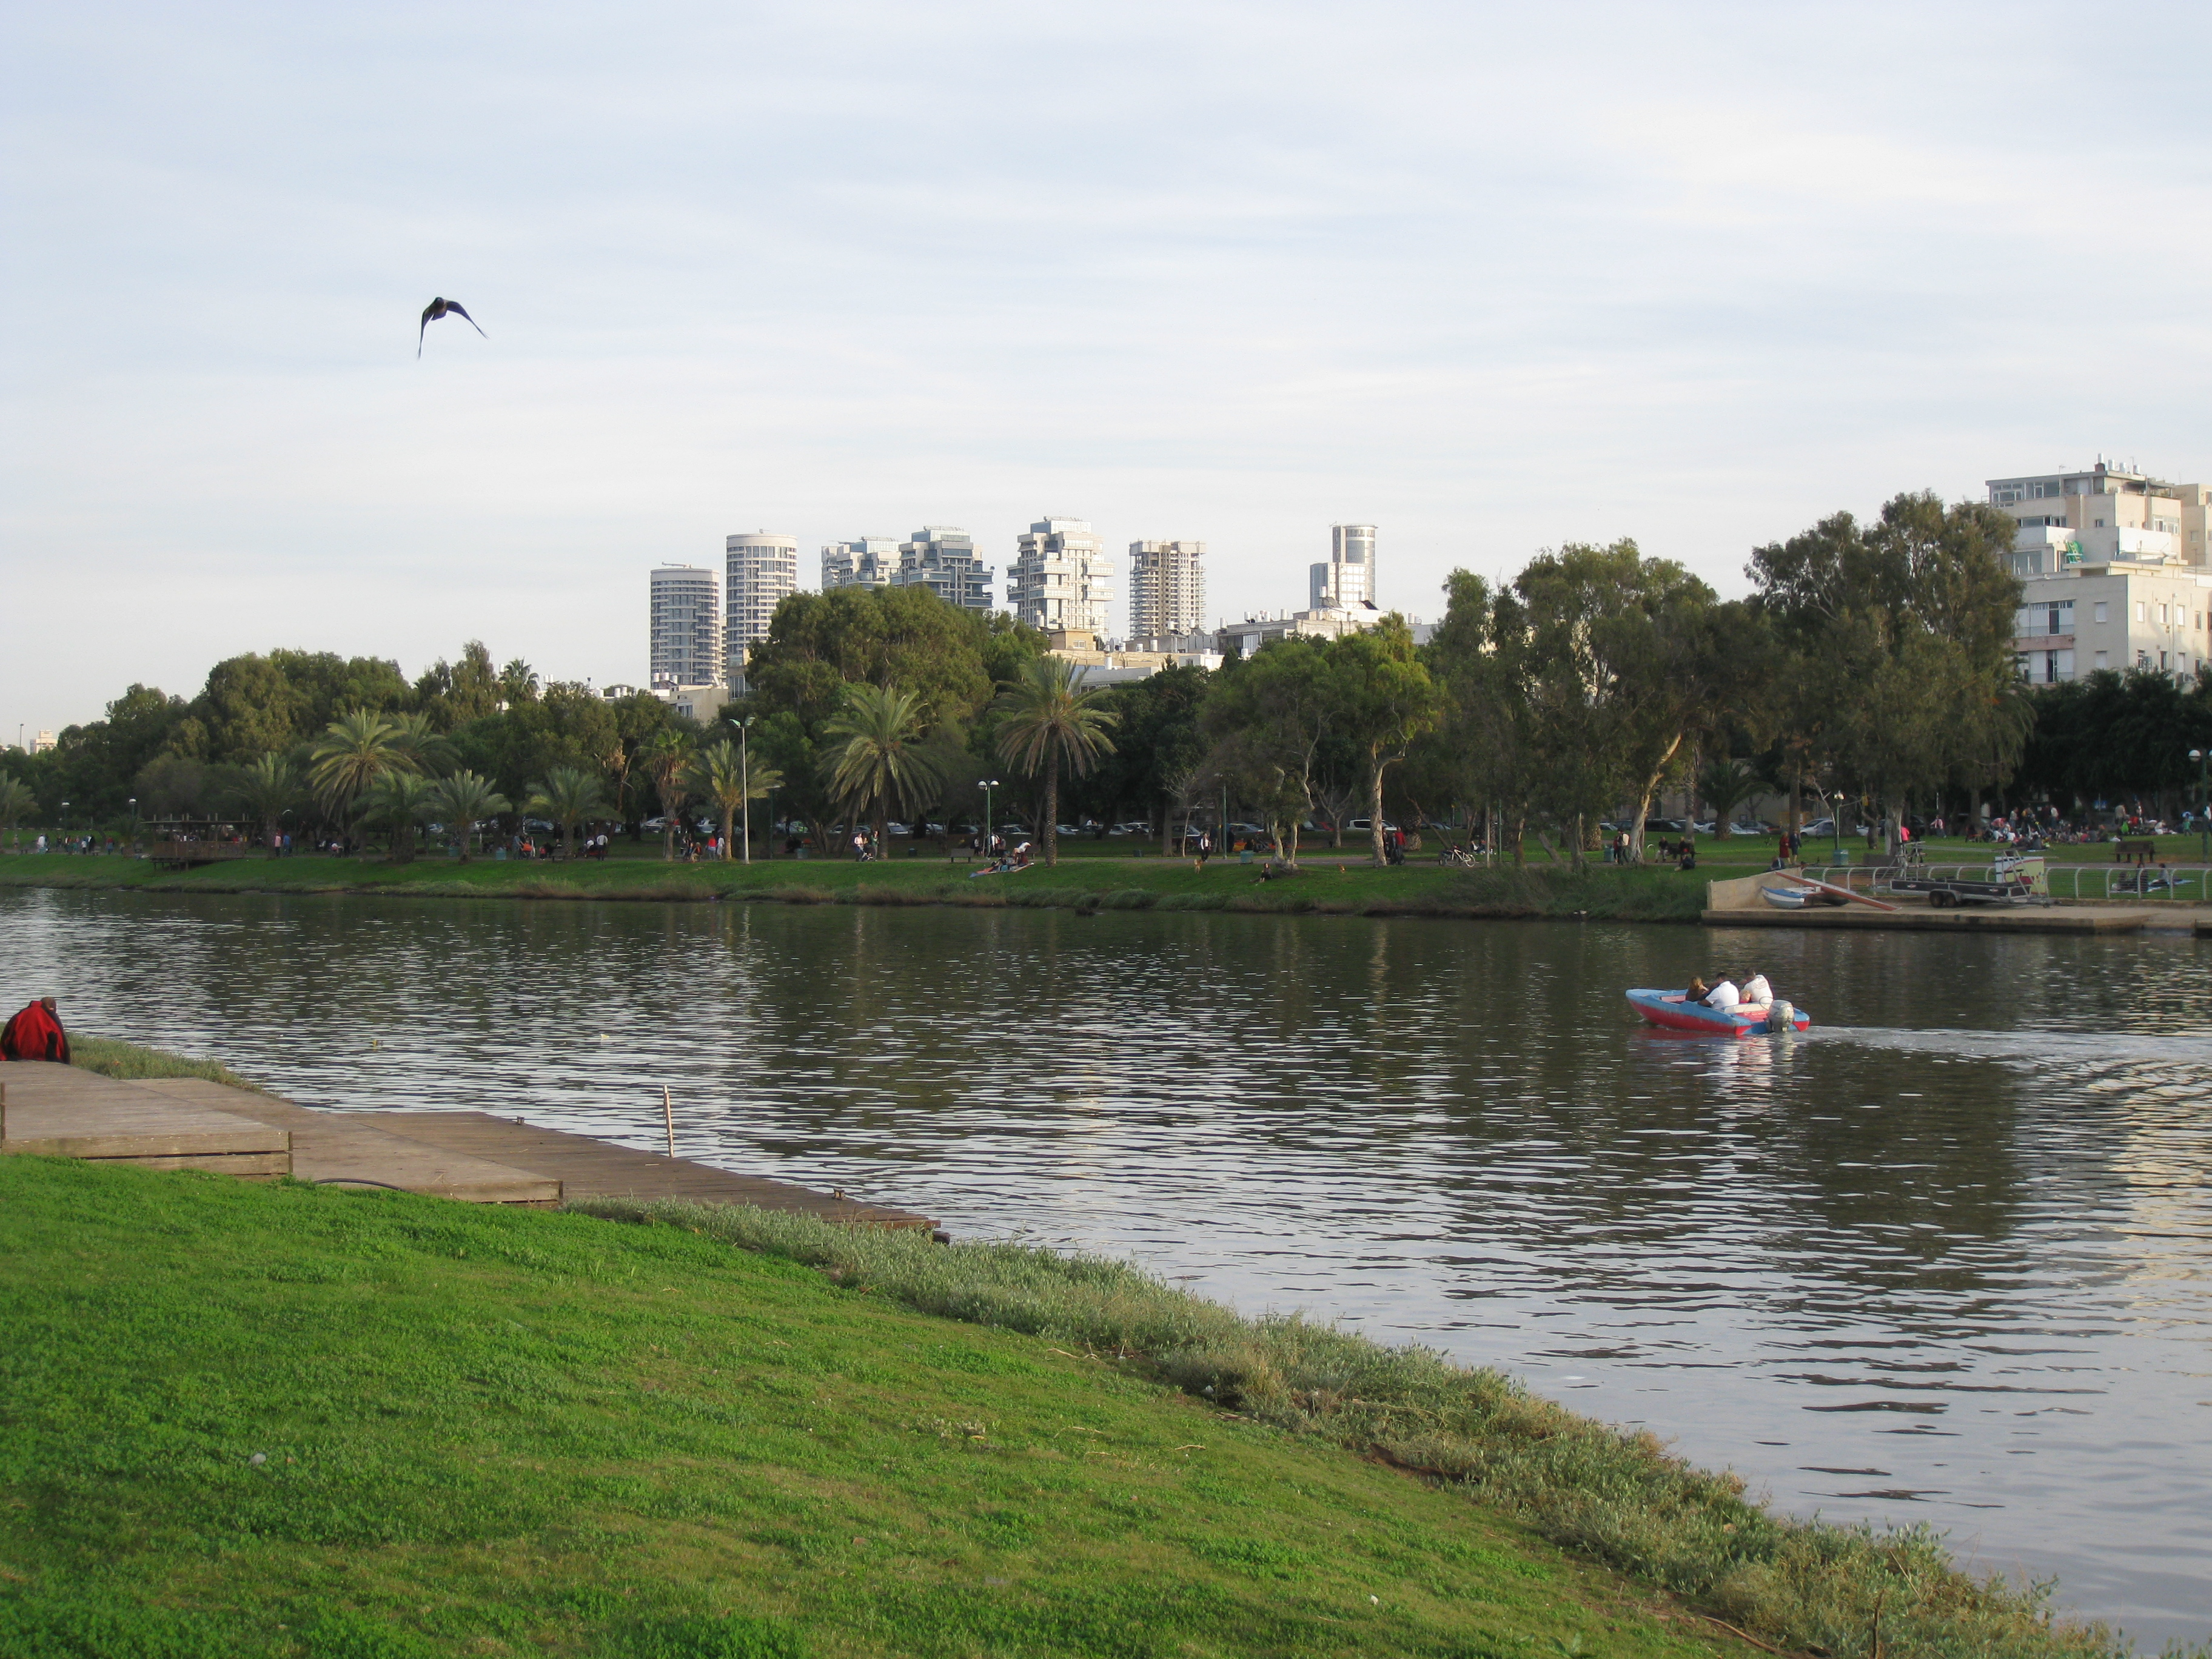 Yarkon River - Wikipedia on west branch ausable river map, river ahava map, tigris river map, khabur river map, mesopotamia river map, kazan river map, red river anatolia map, euphrates river map, chebar river map,